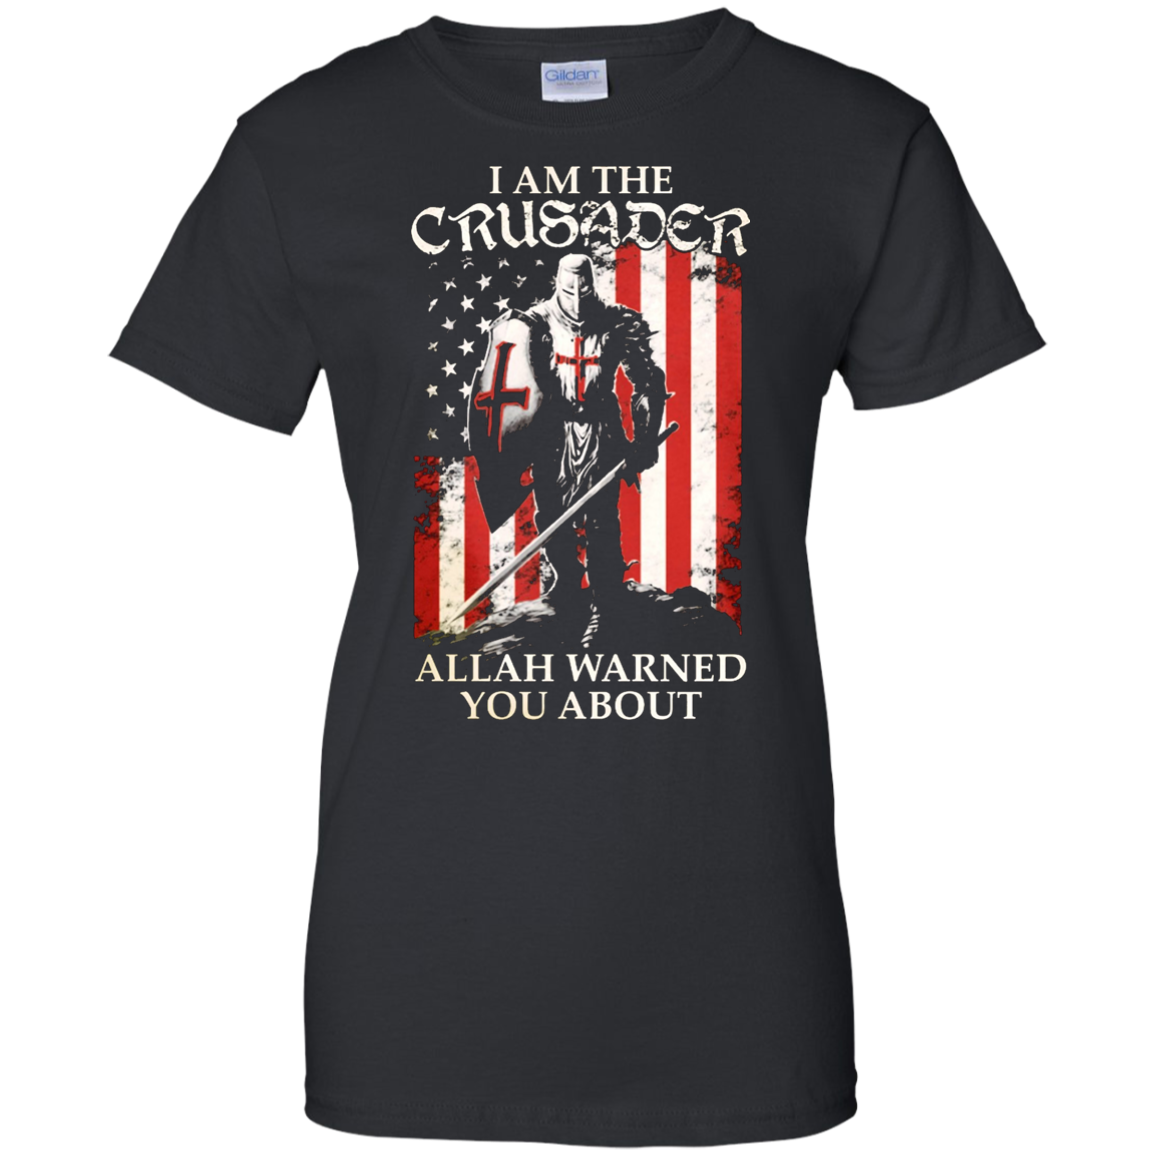 The Crusader - I Fear No Evil -Allah Warned You About Shirt